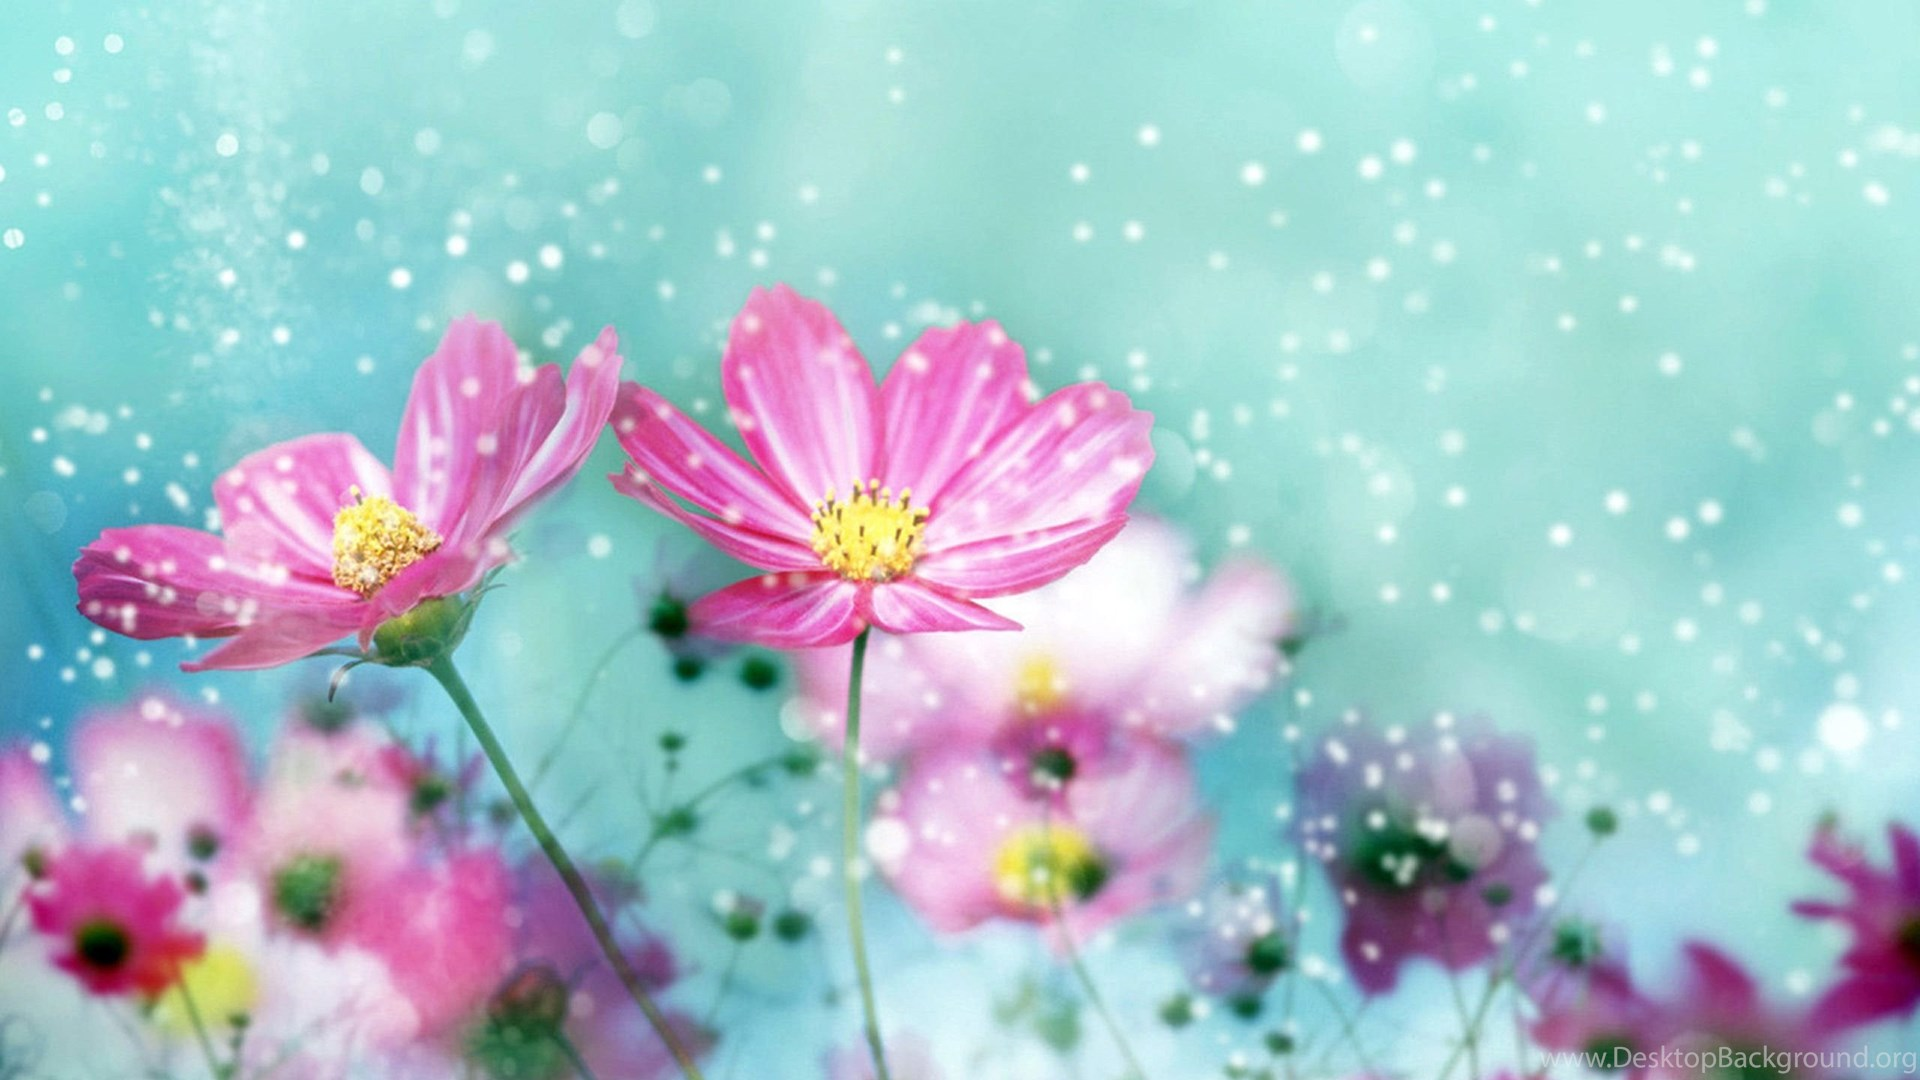 Pretty flower backgrounds hd wallpapers desktop wallpapers popular mightylinksfo